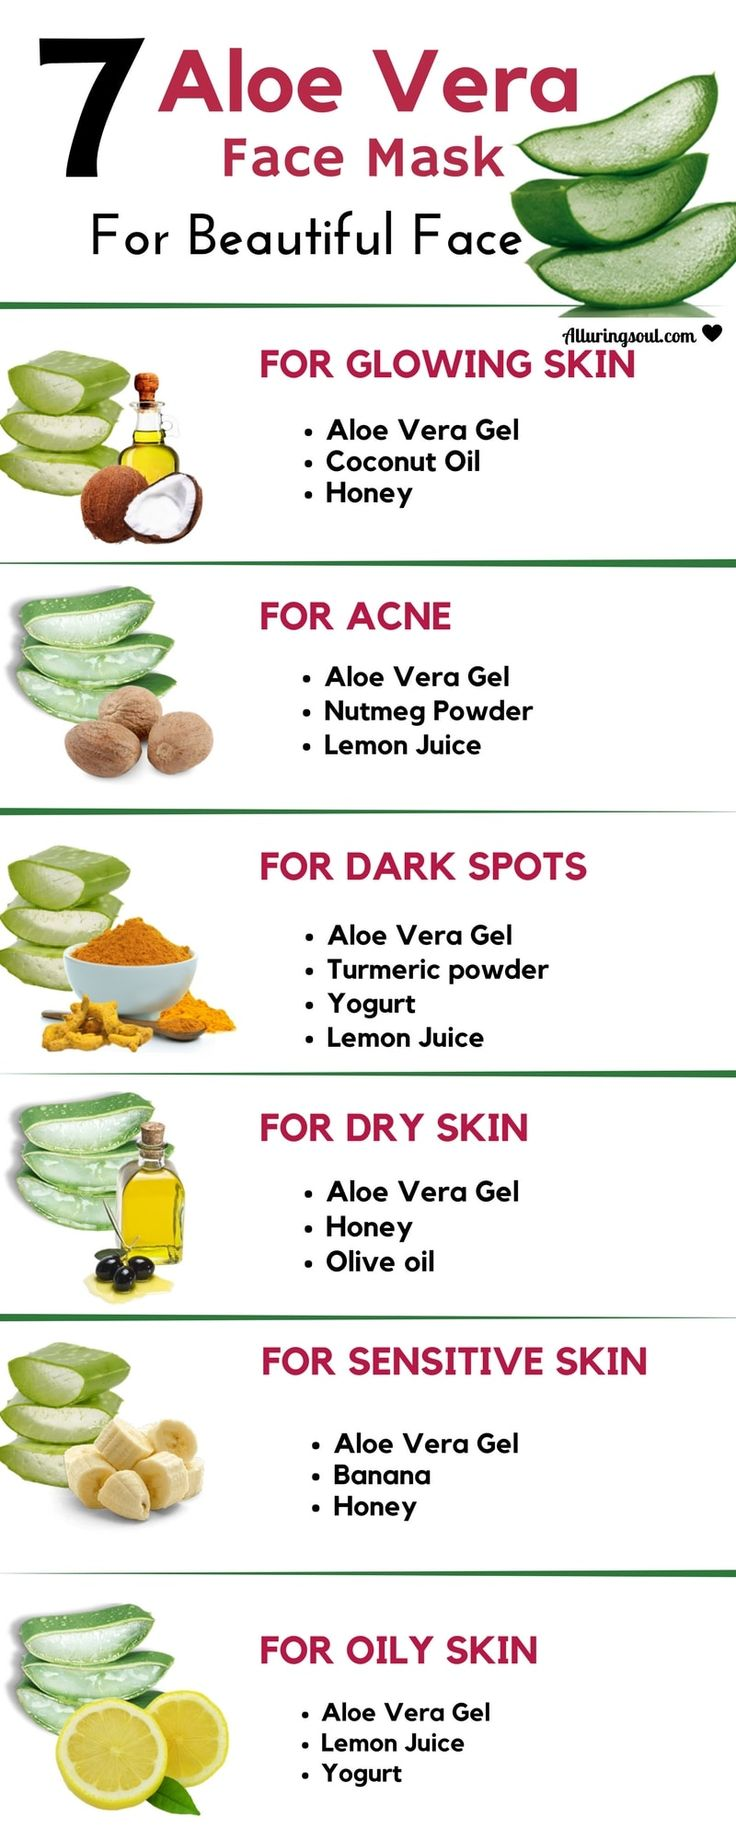 Aloe Vera Face Mask helps every skin problems. It treats acne, dry skin, oily sk…